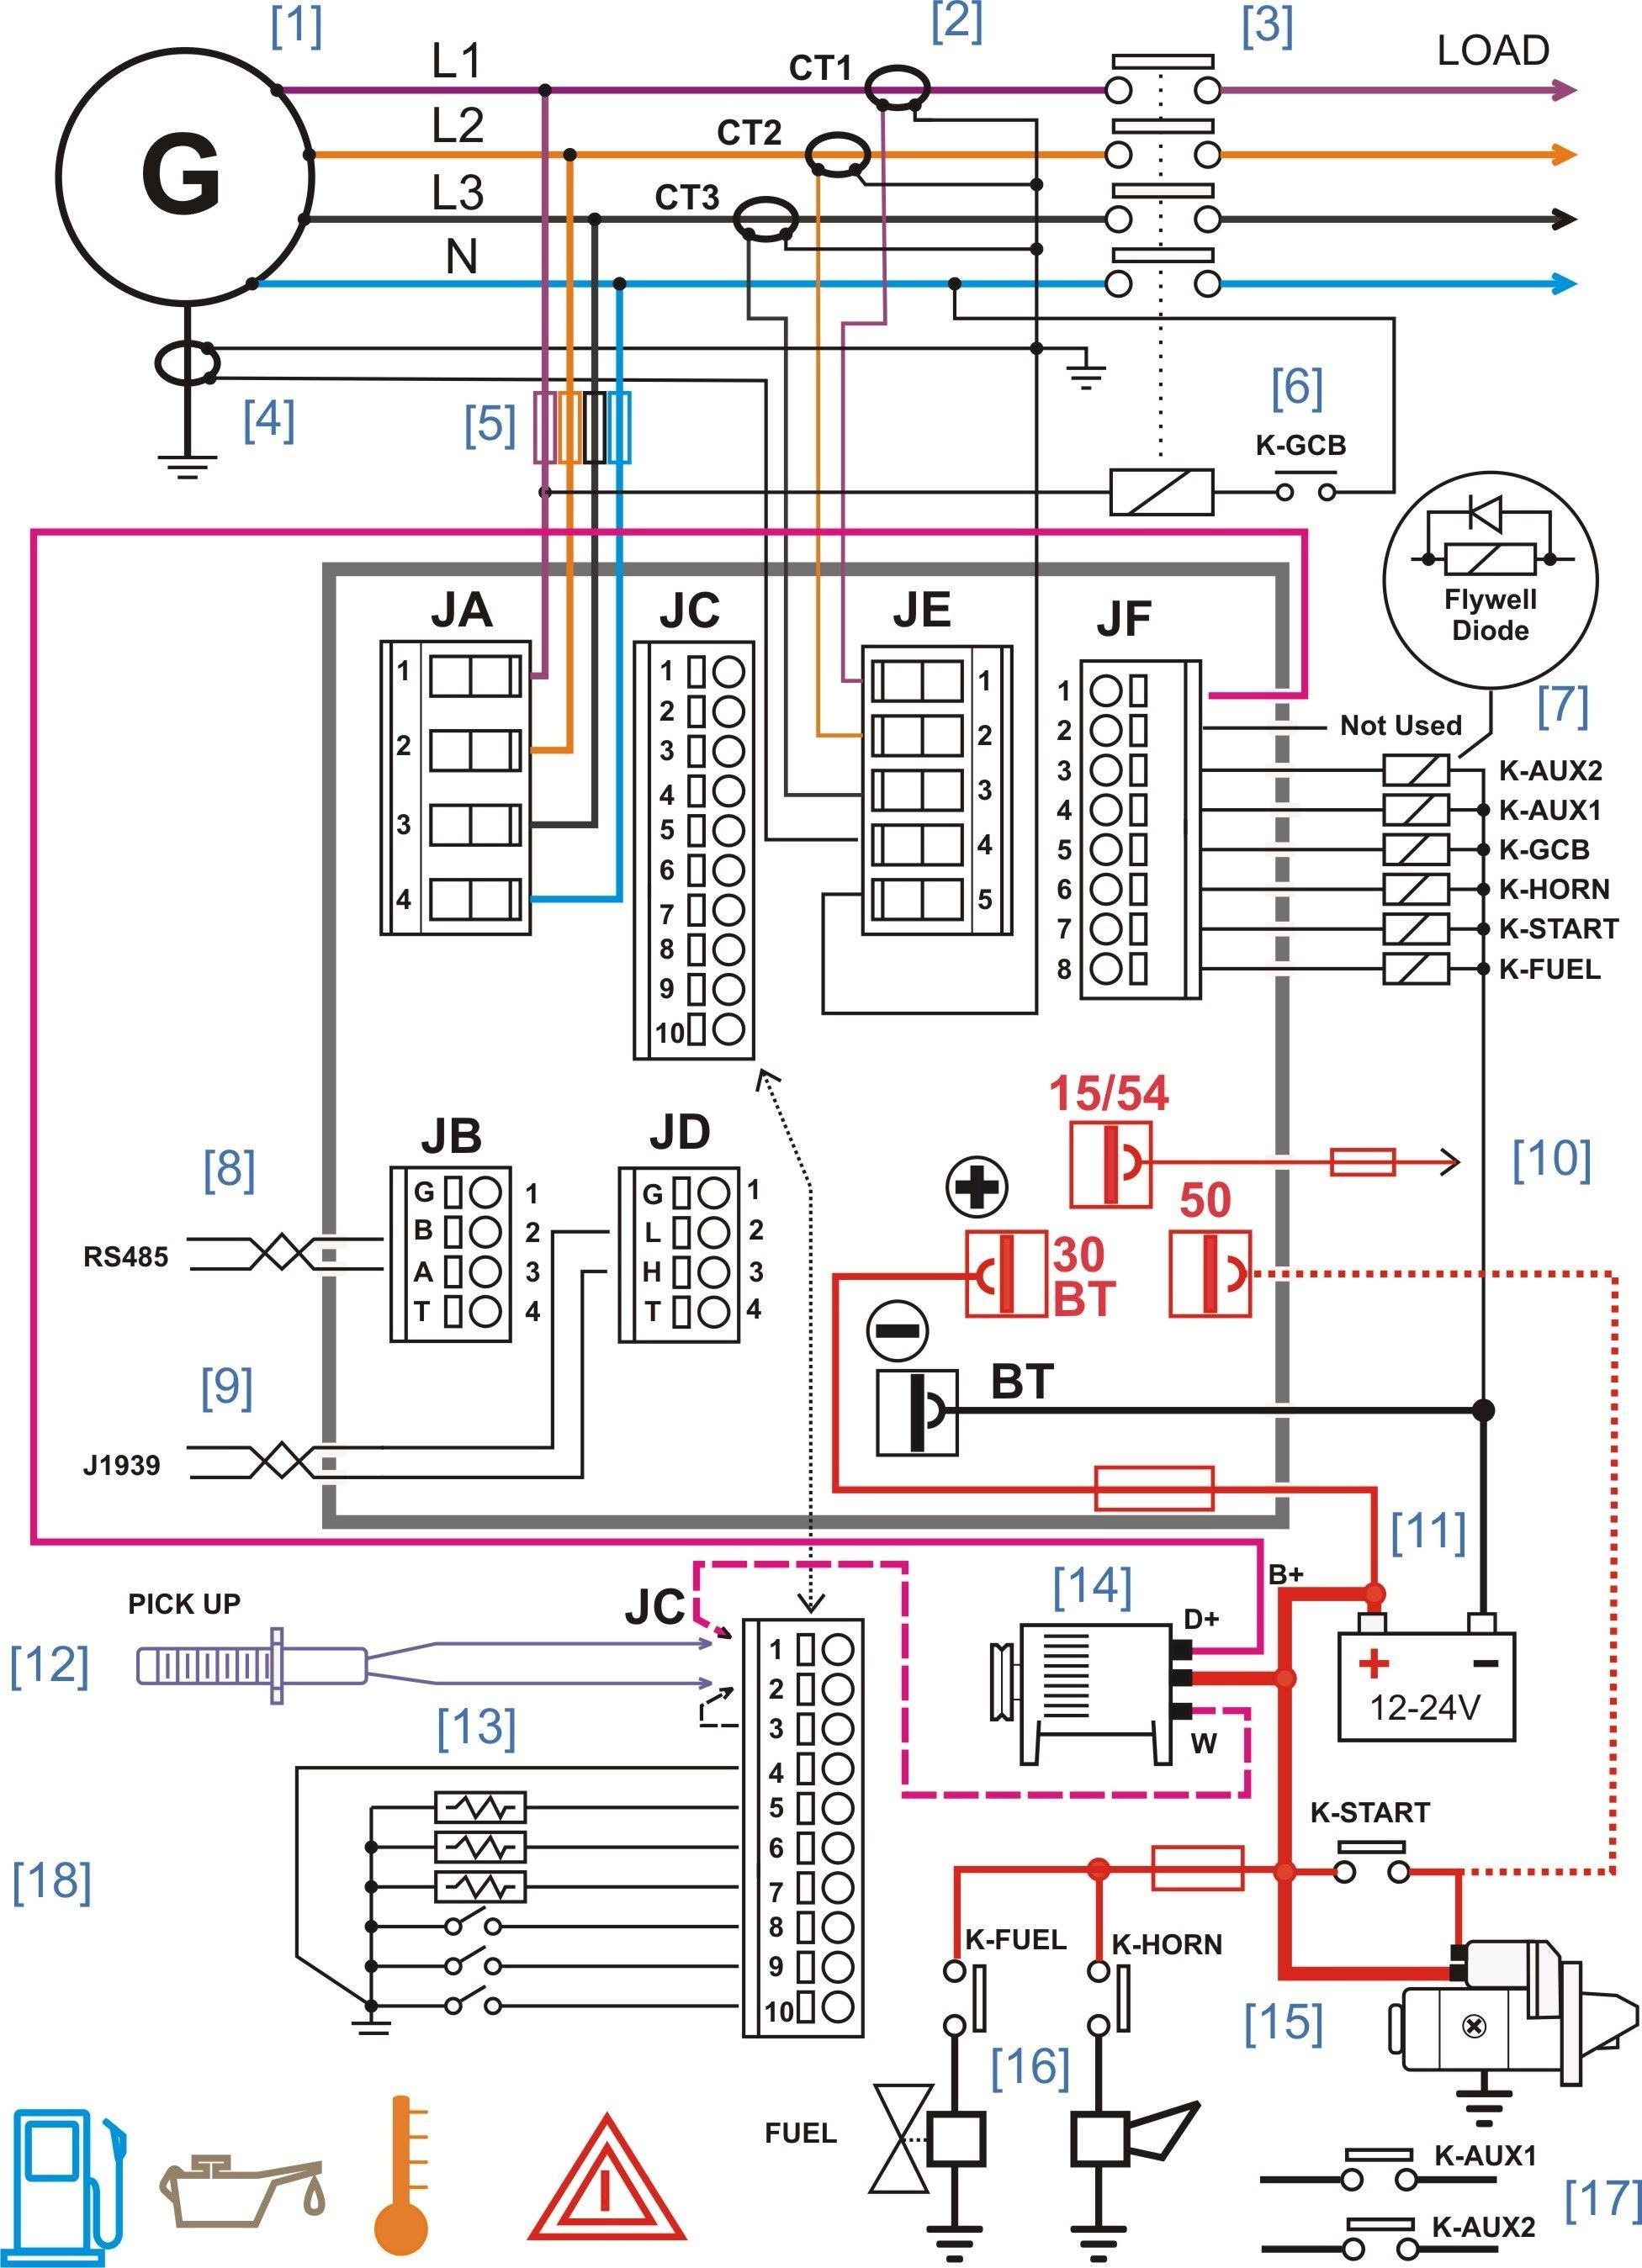 residential wiring diagram software Download-House Wiring Plan Drawing Inspirational House Wiring Diagram App Refrence Electrical Wiring Diagram software 17-i